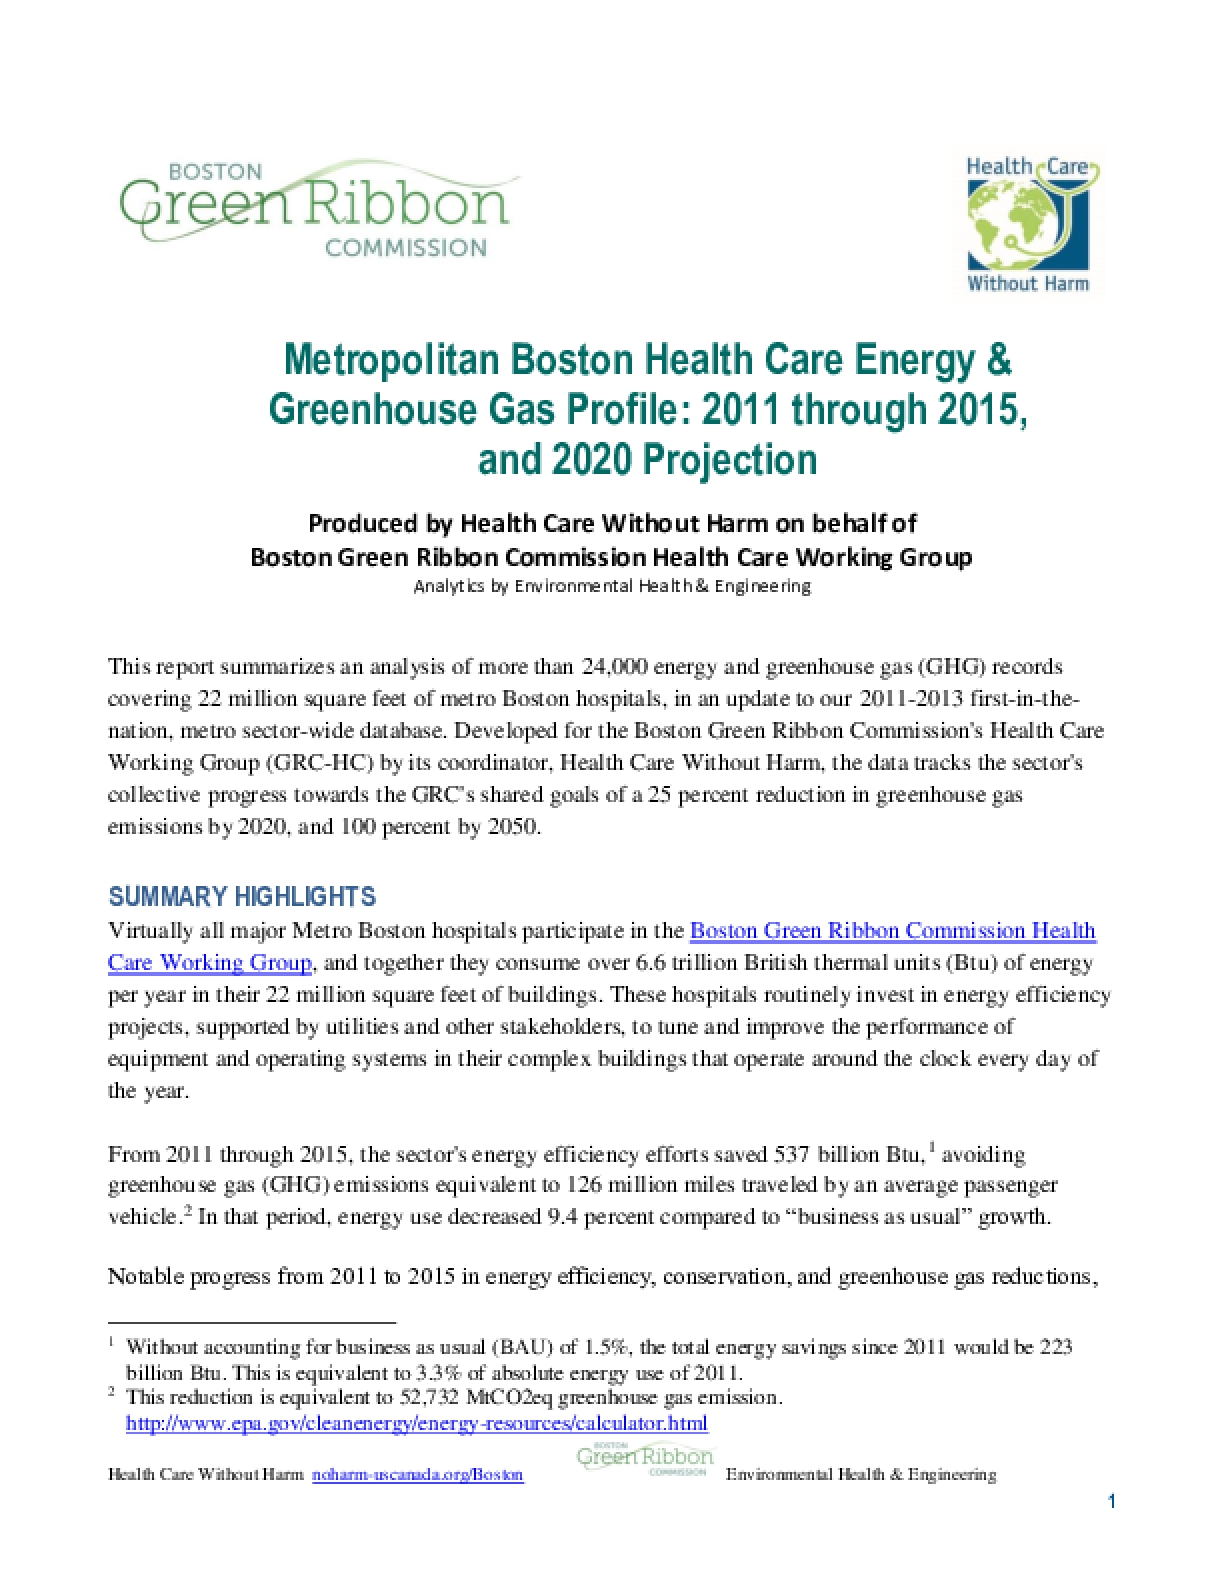 Metropolitan Boston Health Care Energy & Greenhouse Gas Profile: 2011 through 2015, and 2020 Projection